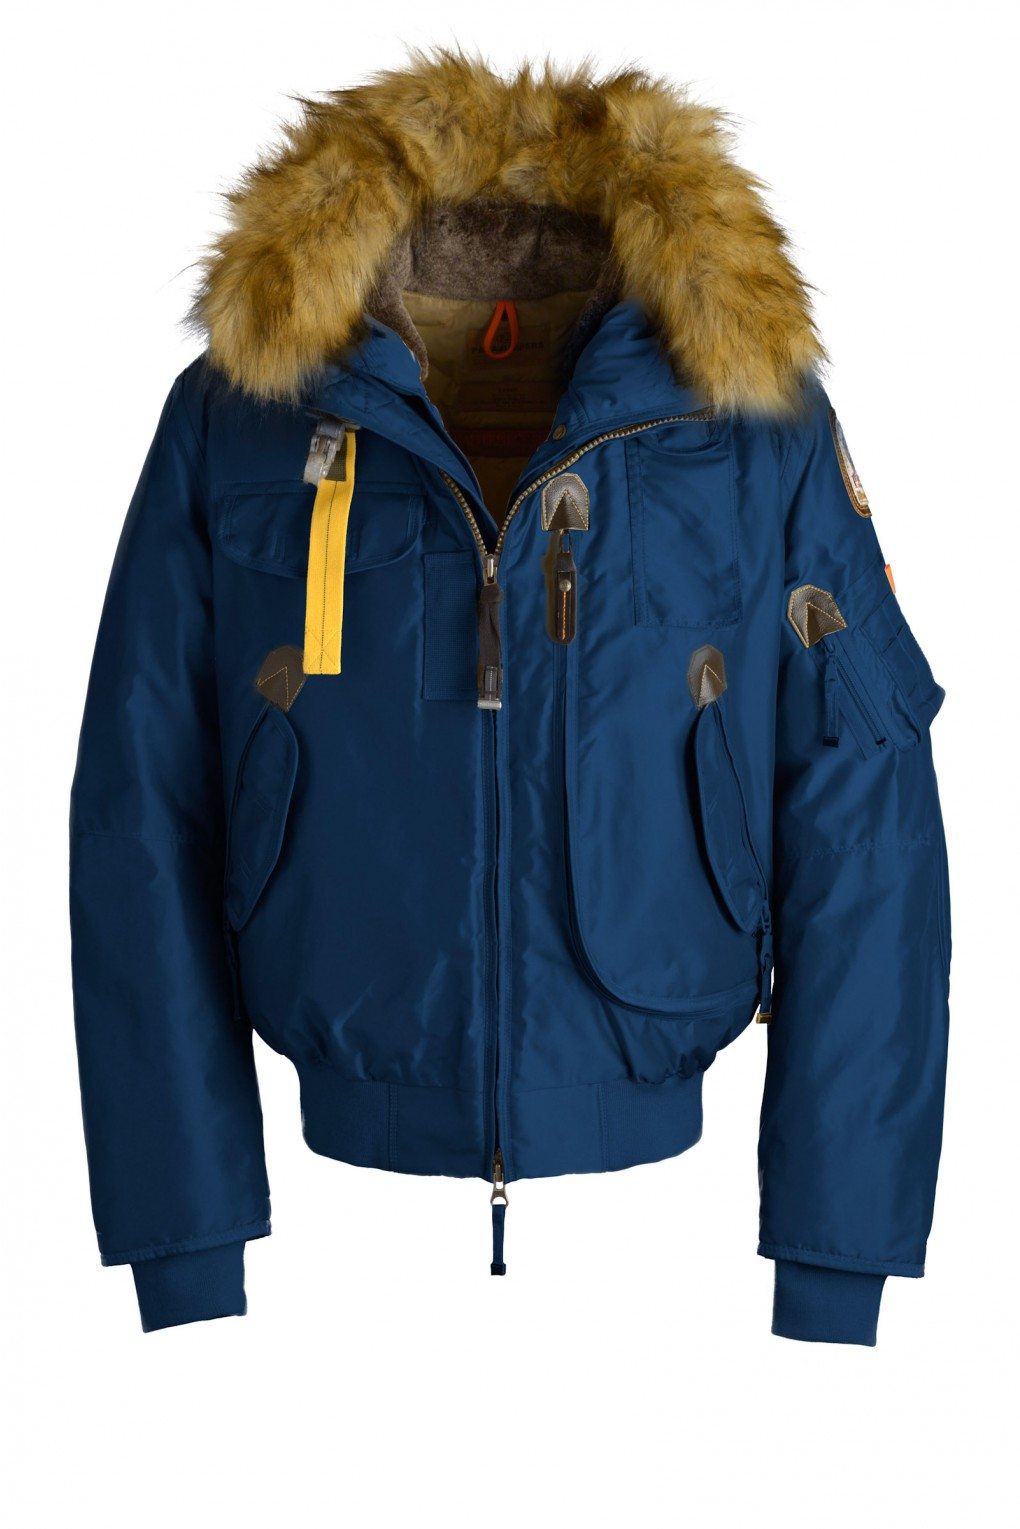 parajumpers GOBI ECO man outerwear Royal